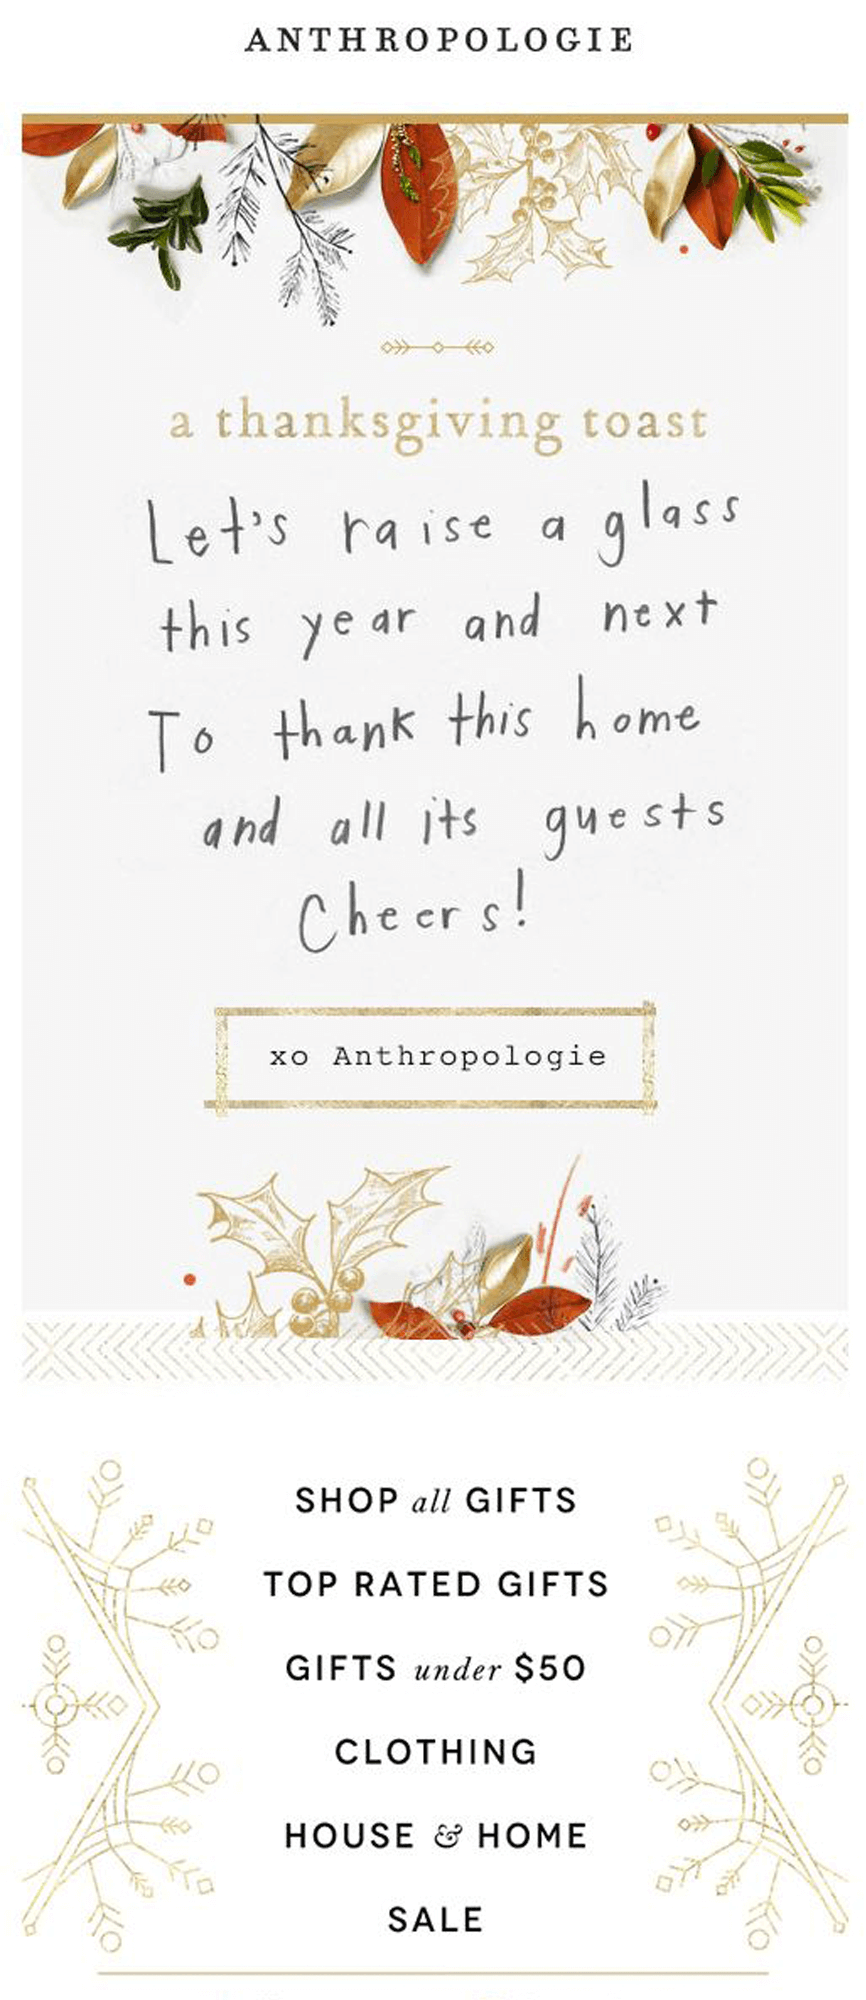 Anthropologie Thanksgiving Email In 2020 Email Design Inspiration Holiday Email Campaigns Beautiful Email Templates